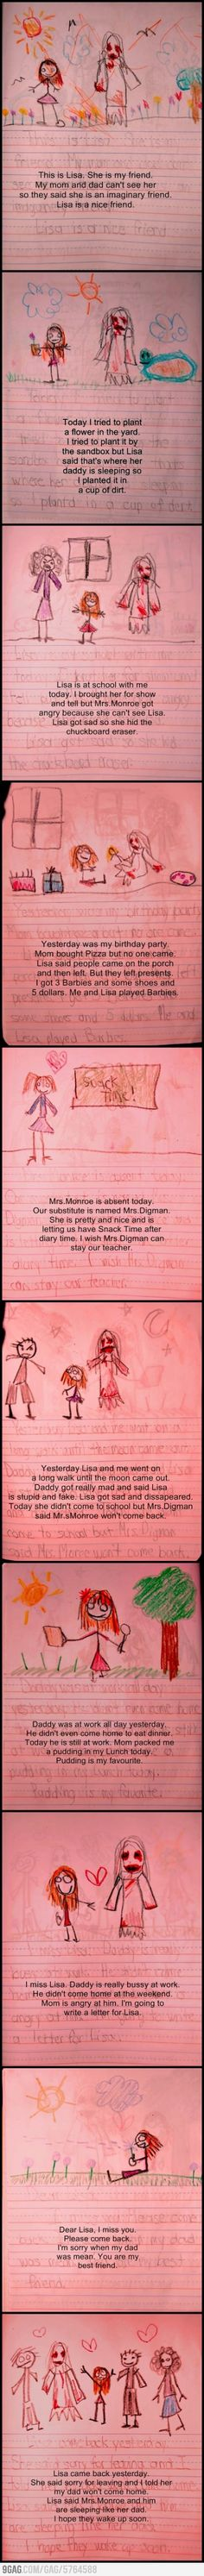 Lisa killed the teacher and her dad. Im glad my imaginary friend was a soul and didn't take them.